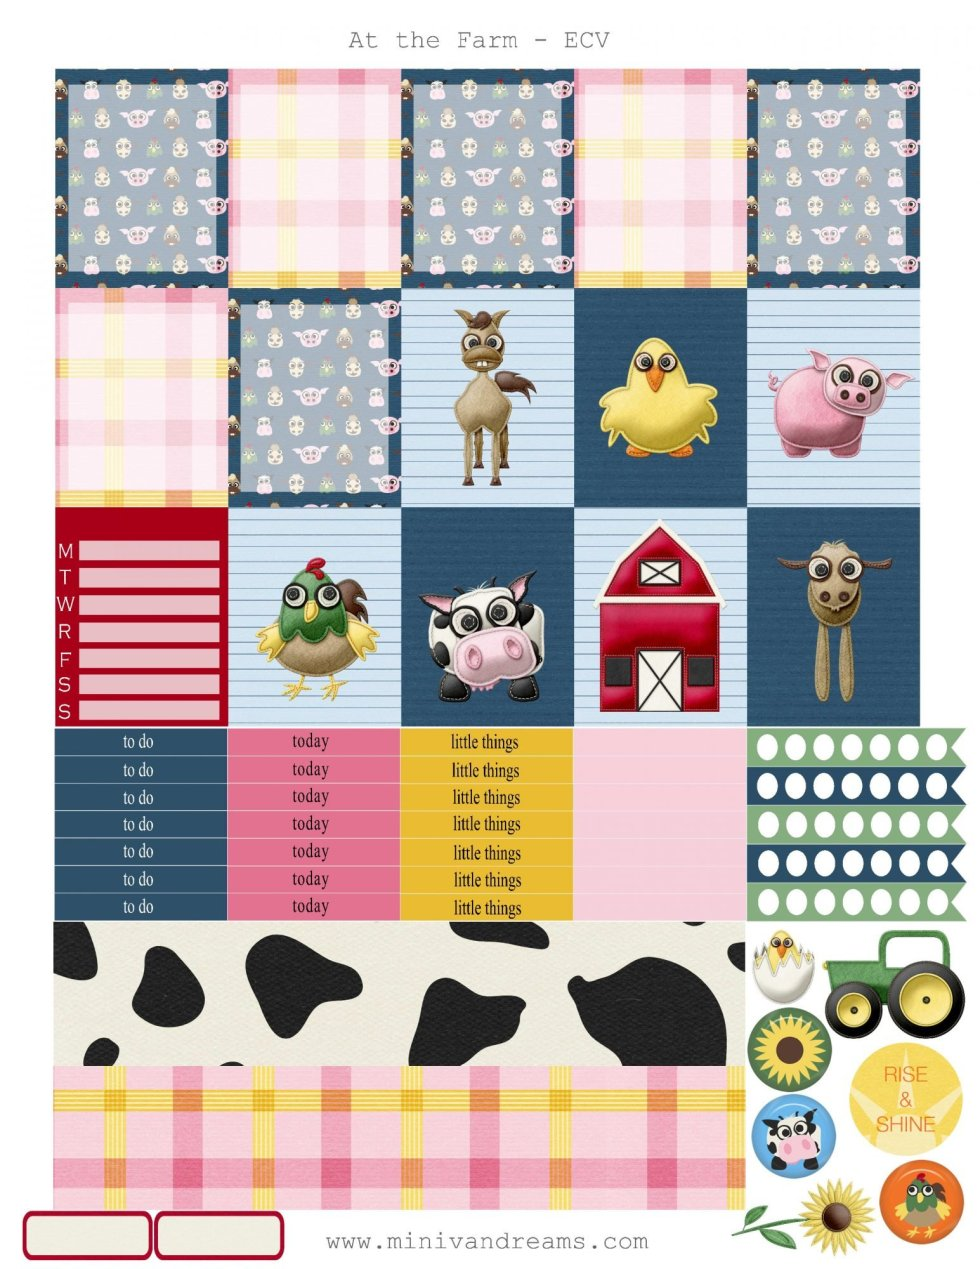 Free Printable Planner Stickers: At the Farm